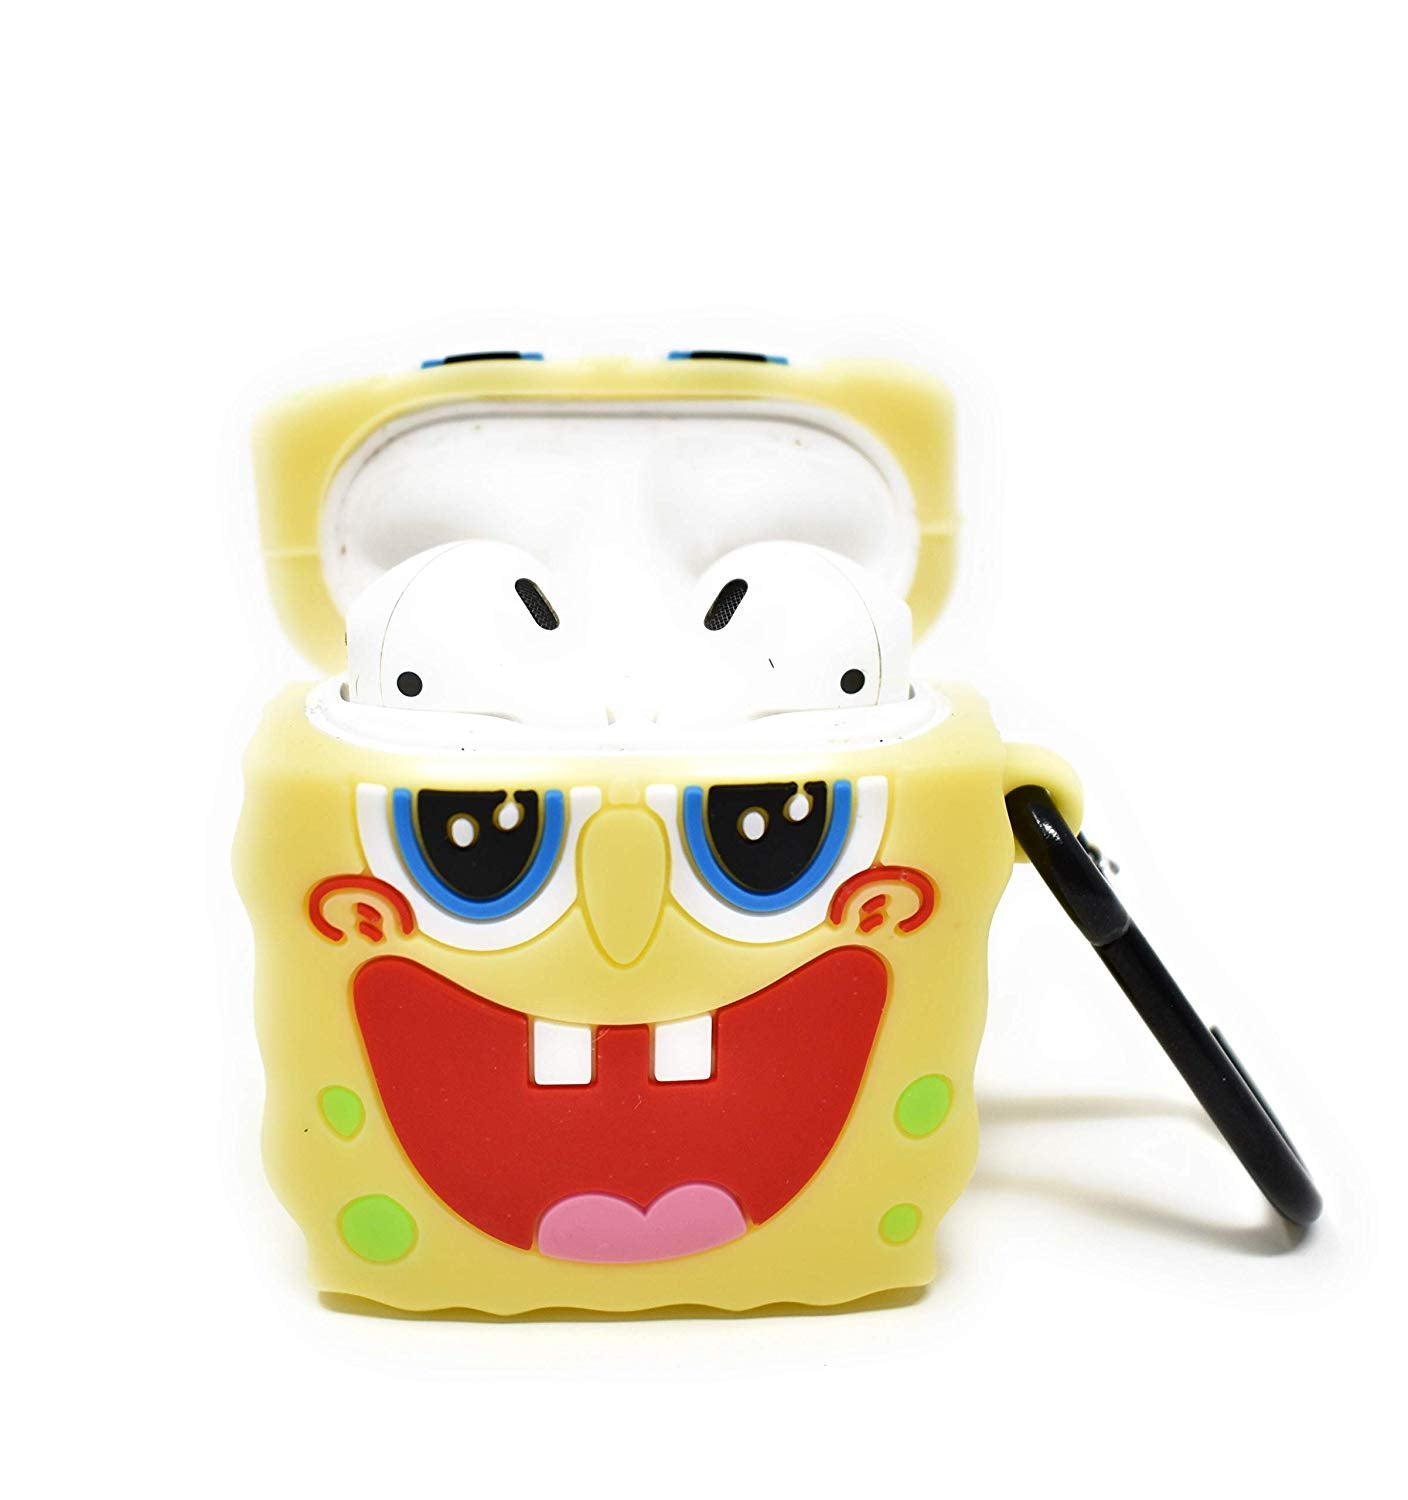 SPONGEBOB & PATRICK SOFT SILICONE AIRPODS CASES - Hanging Owl